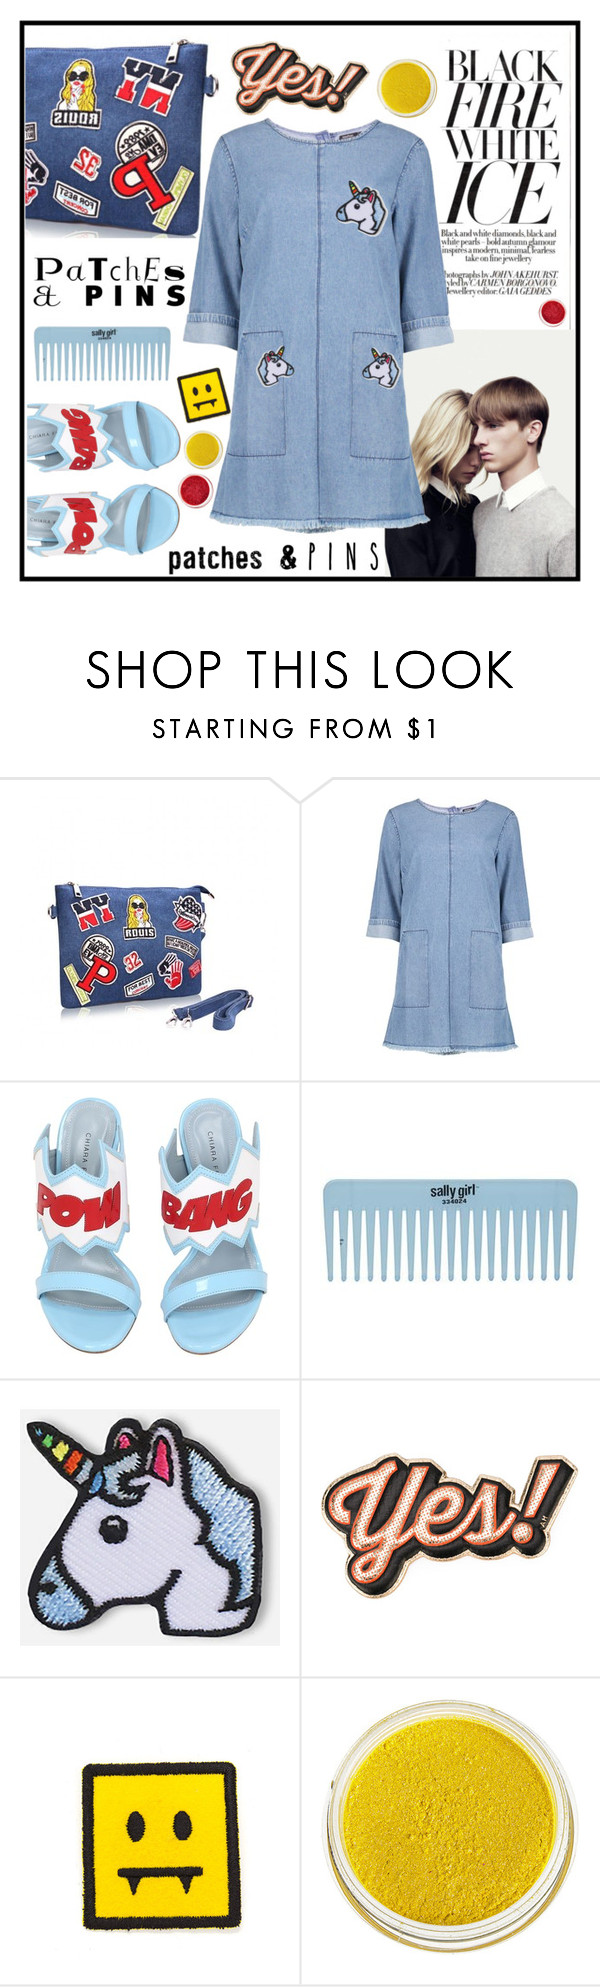 """""""Patch and Pins!"""" by misskarolina ❤ liked on Polyvore featuring Chiara Ferragni, Hipstapatch, Anya Hindmarch, Manic Panic, polyvoreeditorial and patchesandpins"""